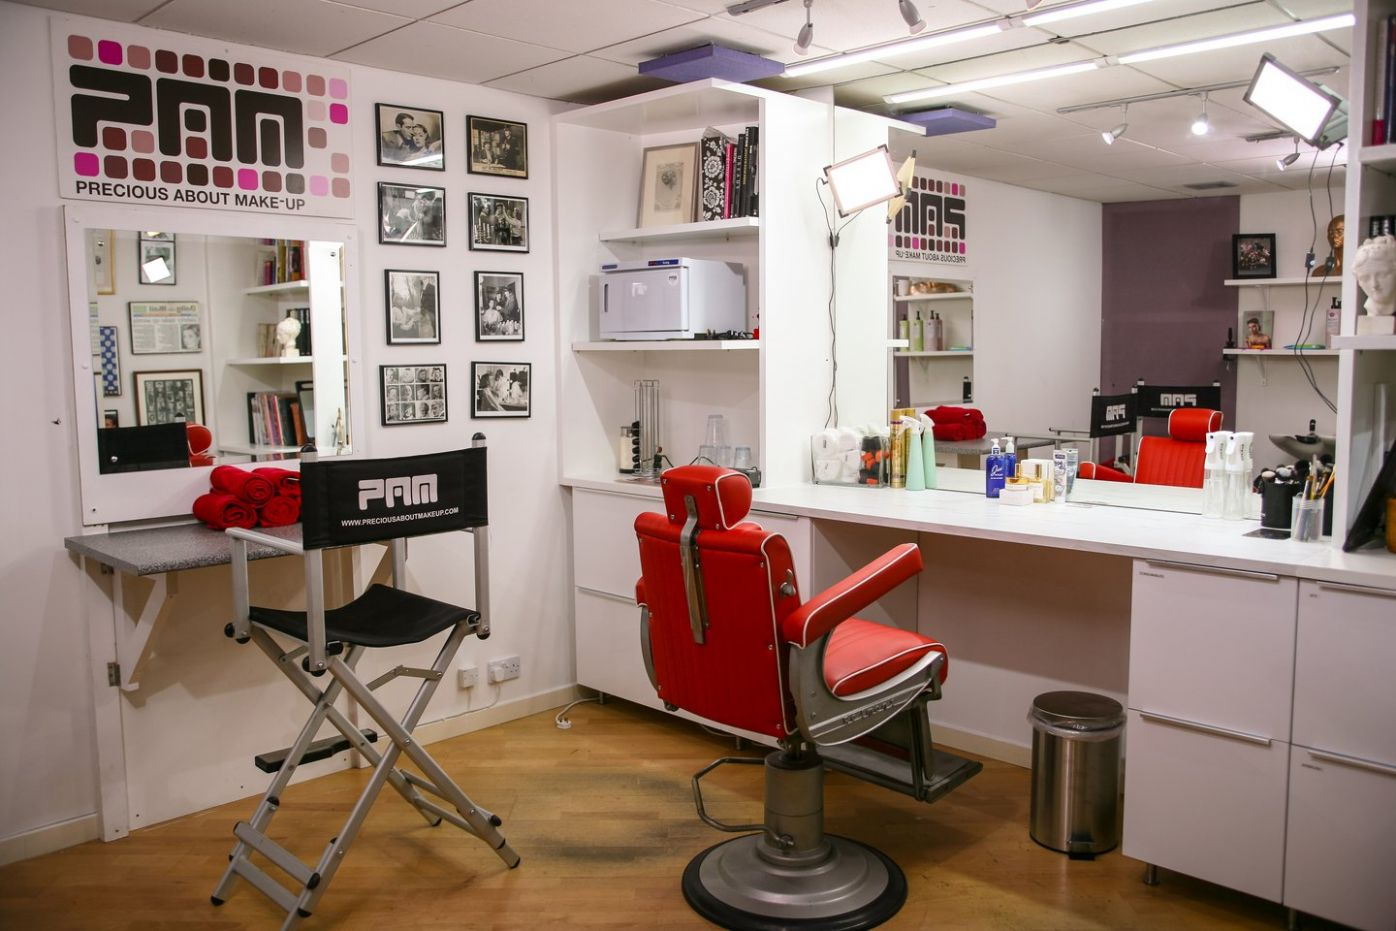 Precious About Make-up - Makeup Shop for Pro's and Students